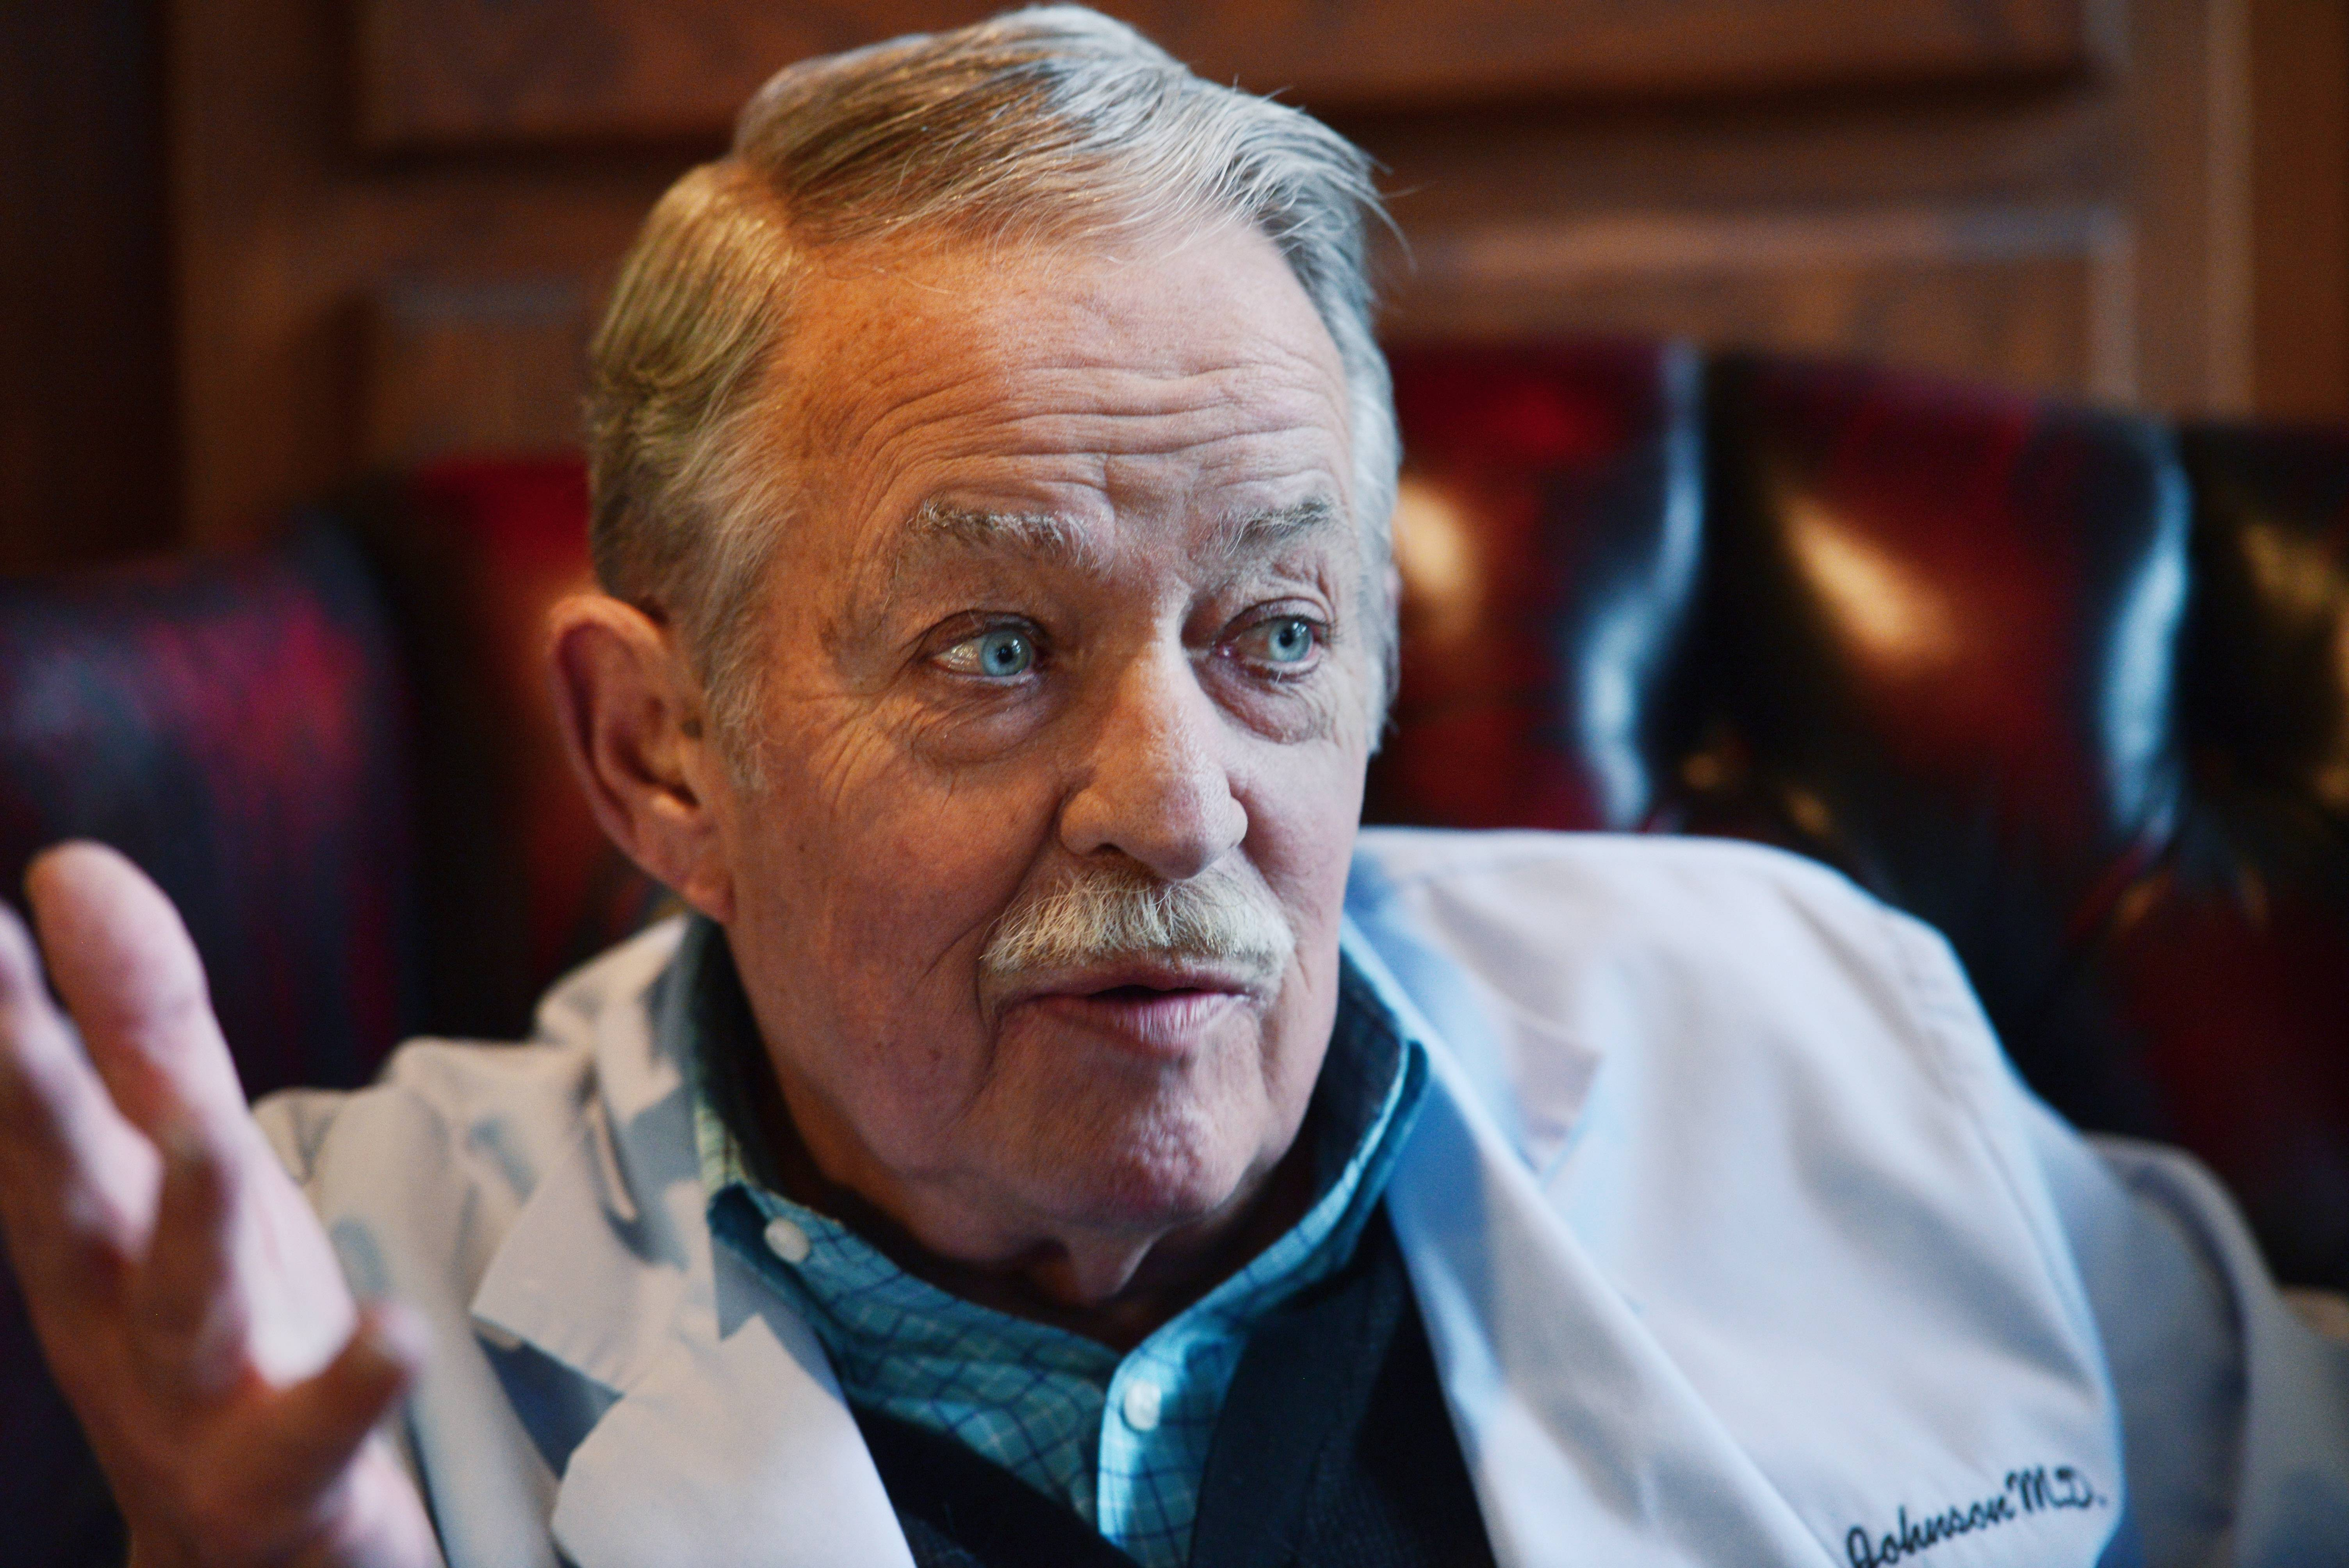 During his career of more than a half-century, Dr. Jeffrey B. Johnson of Hoffman Estates figures he's delivered more babies than anybody in the Northwest suburbs. He also hosted annual pool parties at his home for his nurses and staff.